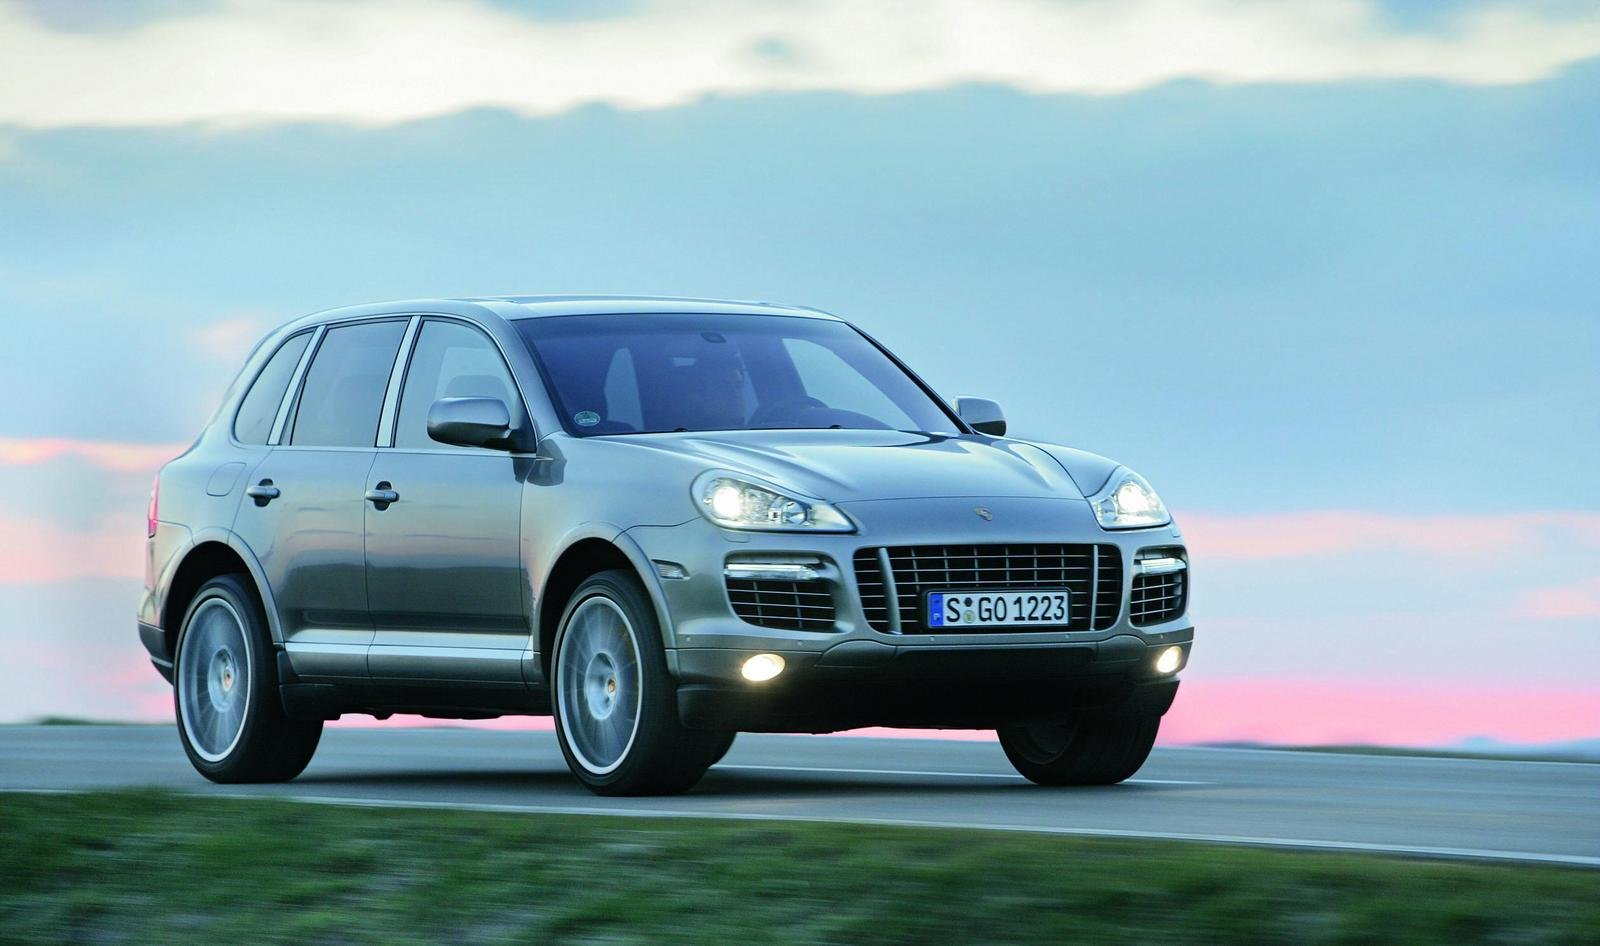 2009 Porsche Cayenne Turbo S Wallpaper